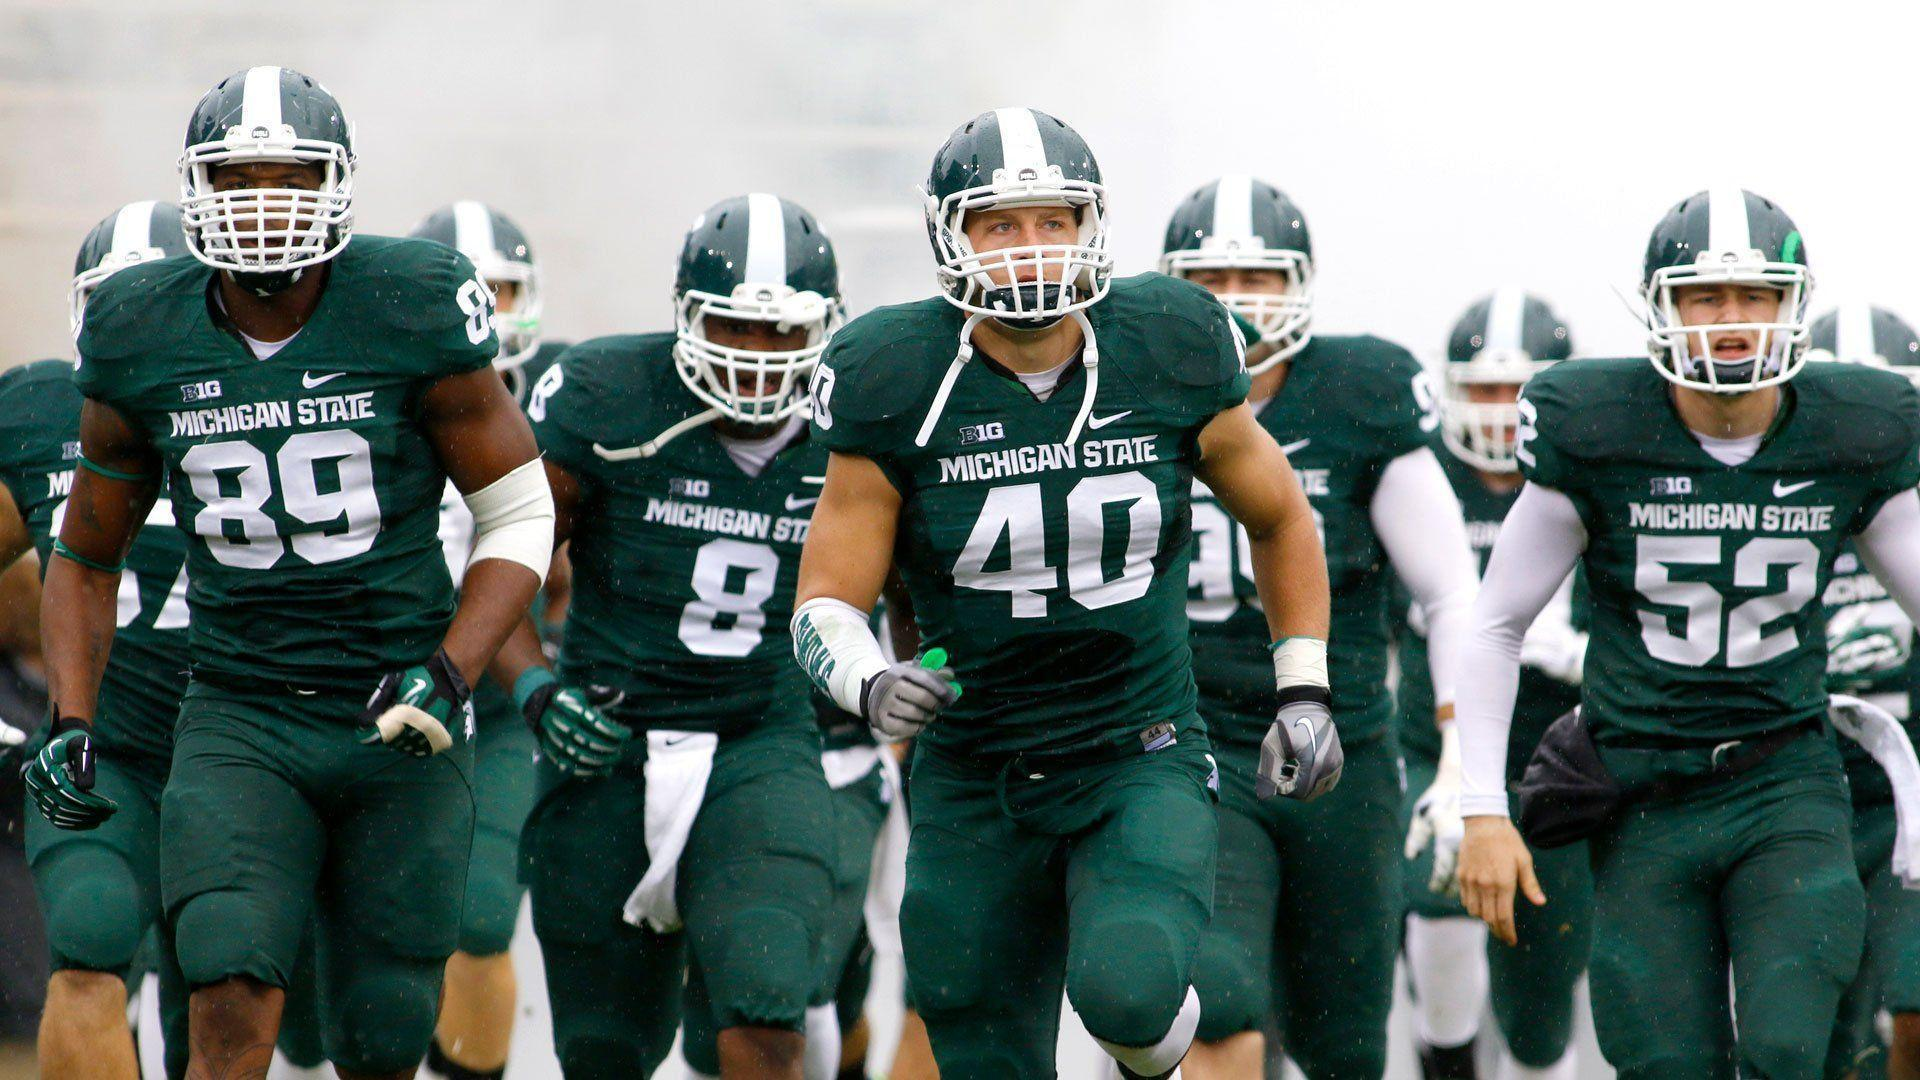 Michigan State University Wallpapers: Msu Football Schedule 2016 Wallpapers